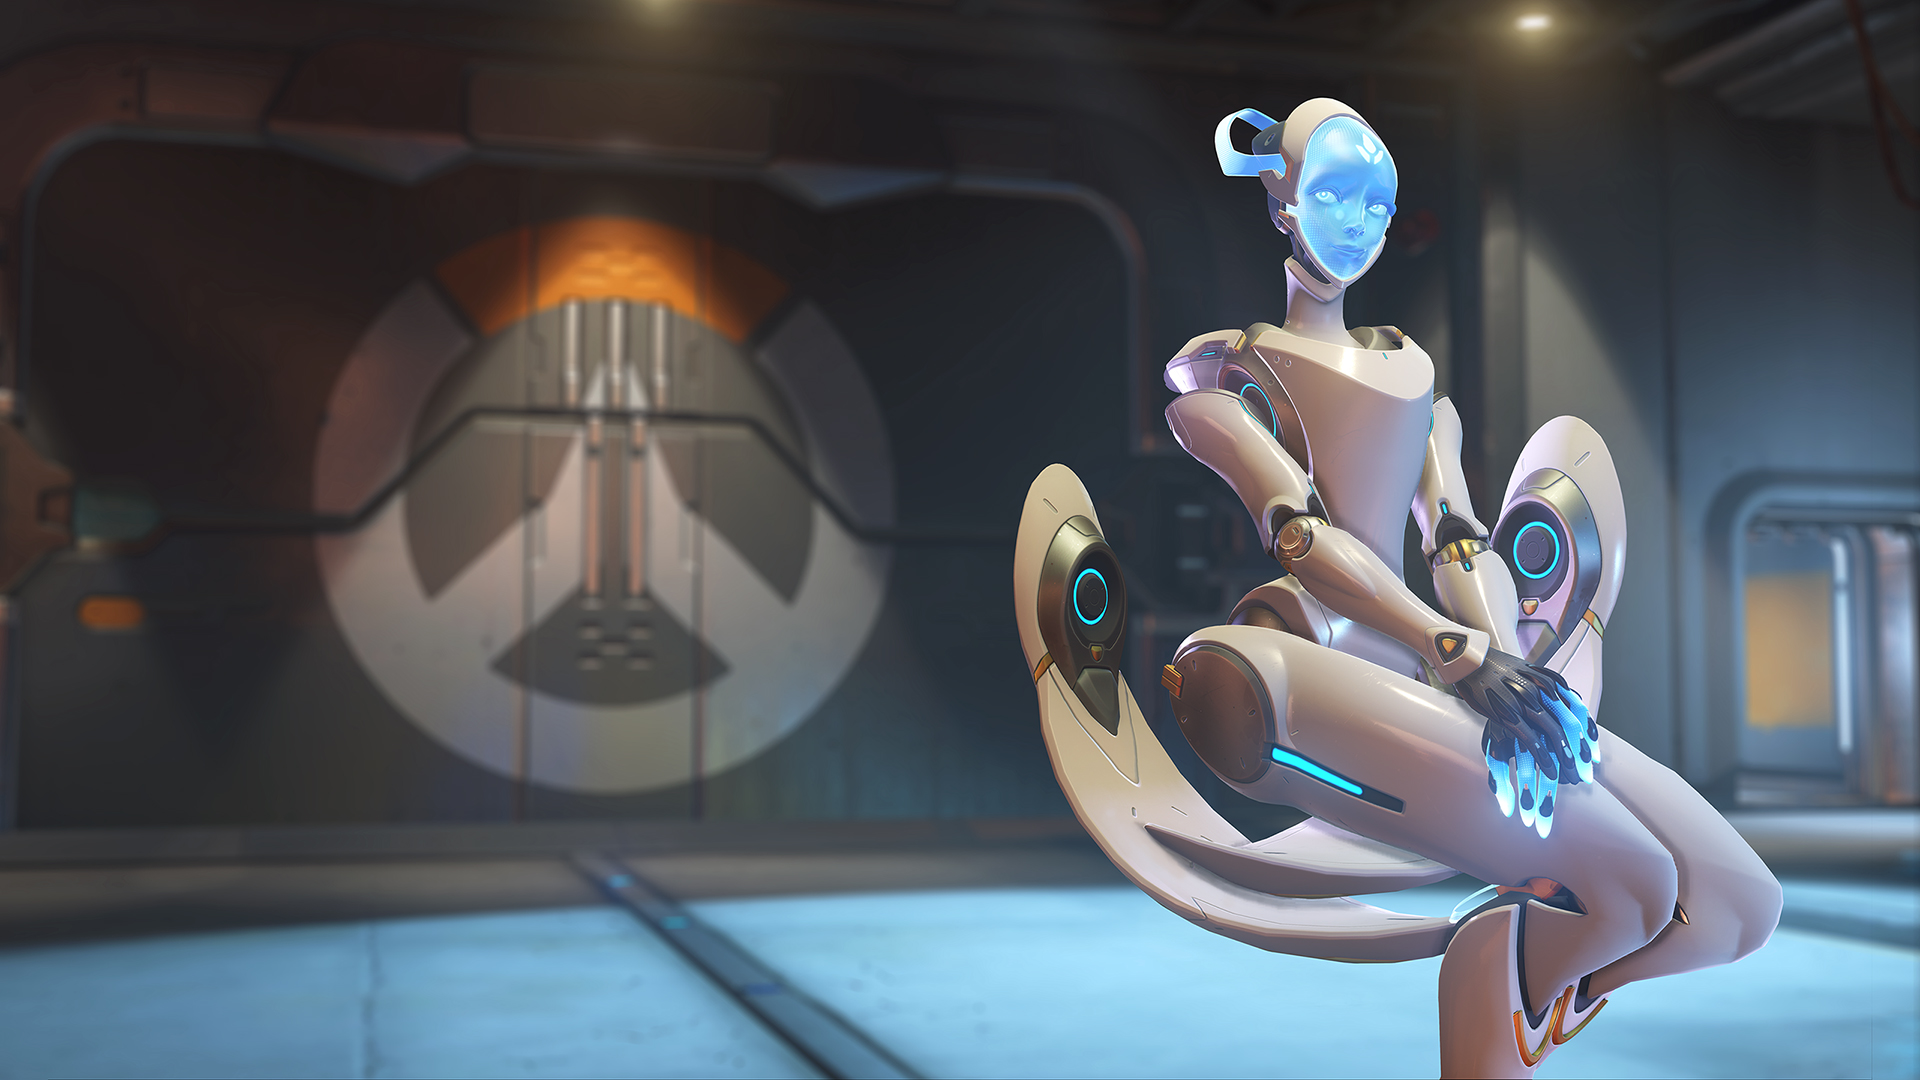 Overwatch: Archive event starts and brings brand new loot